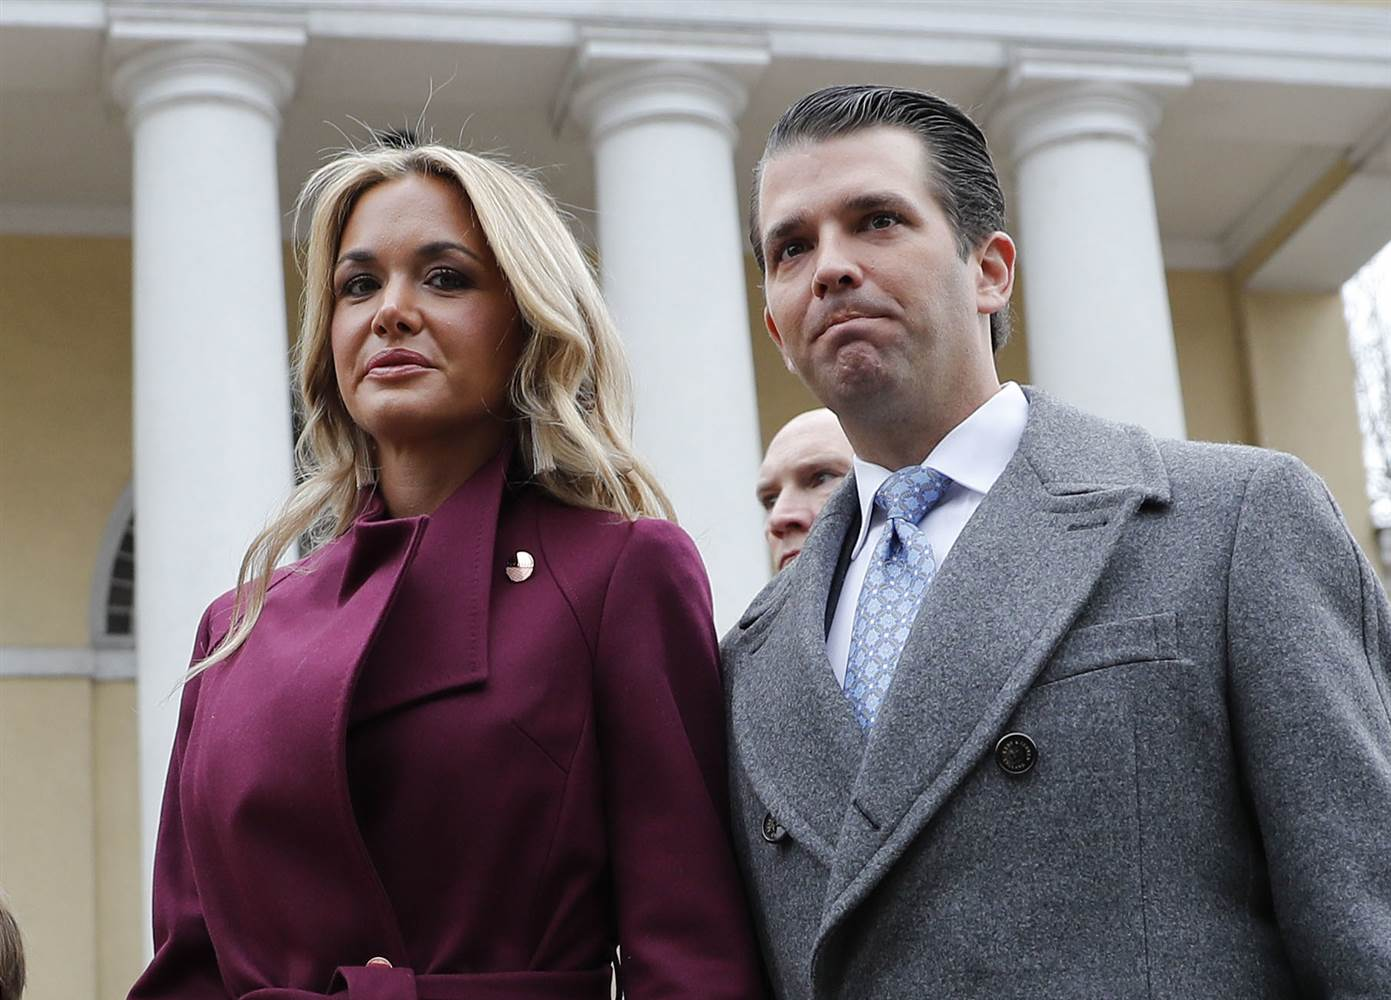 180212-donald-trump-jr-vanessa-mn-1315_3ea98e8c3898746dec5a8945a62d05d2.nbcnews-ux-2880-1000_492994